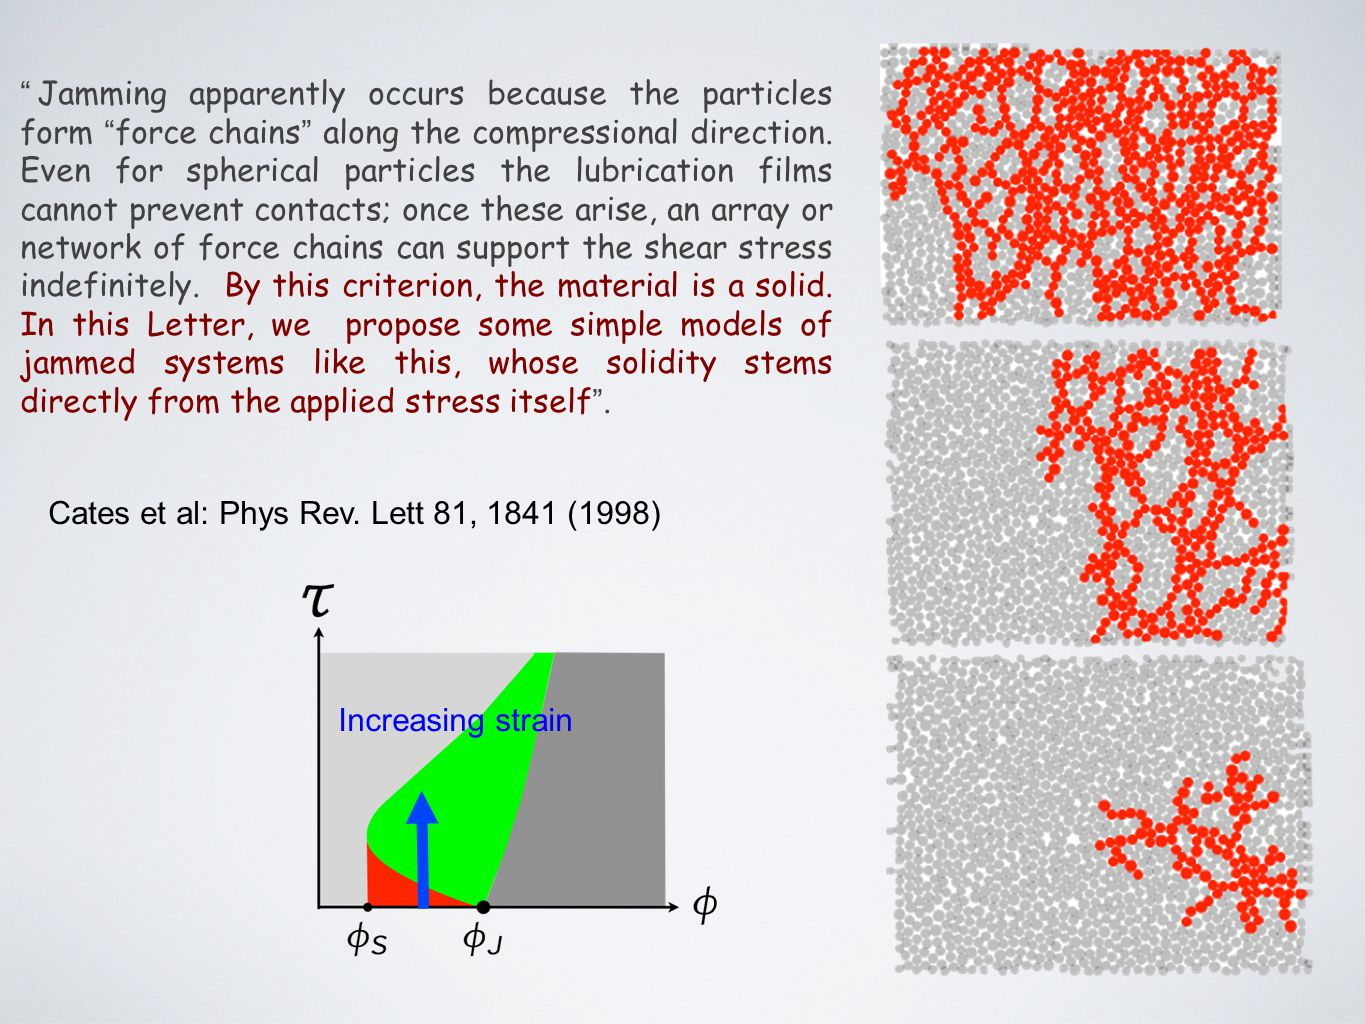 Jamming apparently occurs because the particles form force chains along the compressional direction. Even for spherical particles the lubrication films cannot prevent contacts; once these arise, an array or network of force chains can support the shear stress indefinitely. By this criterion, the material is a solid. In this Letter, we propose some simple models of jammed systems like this, whose solidity stems directly from the applied stress itself .